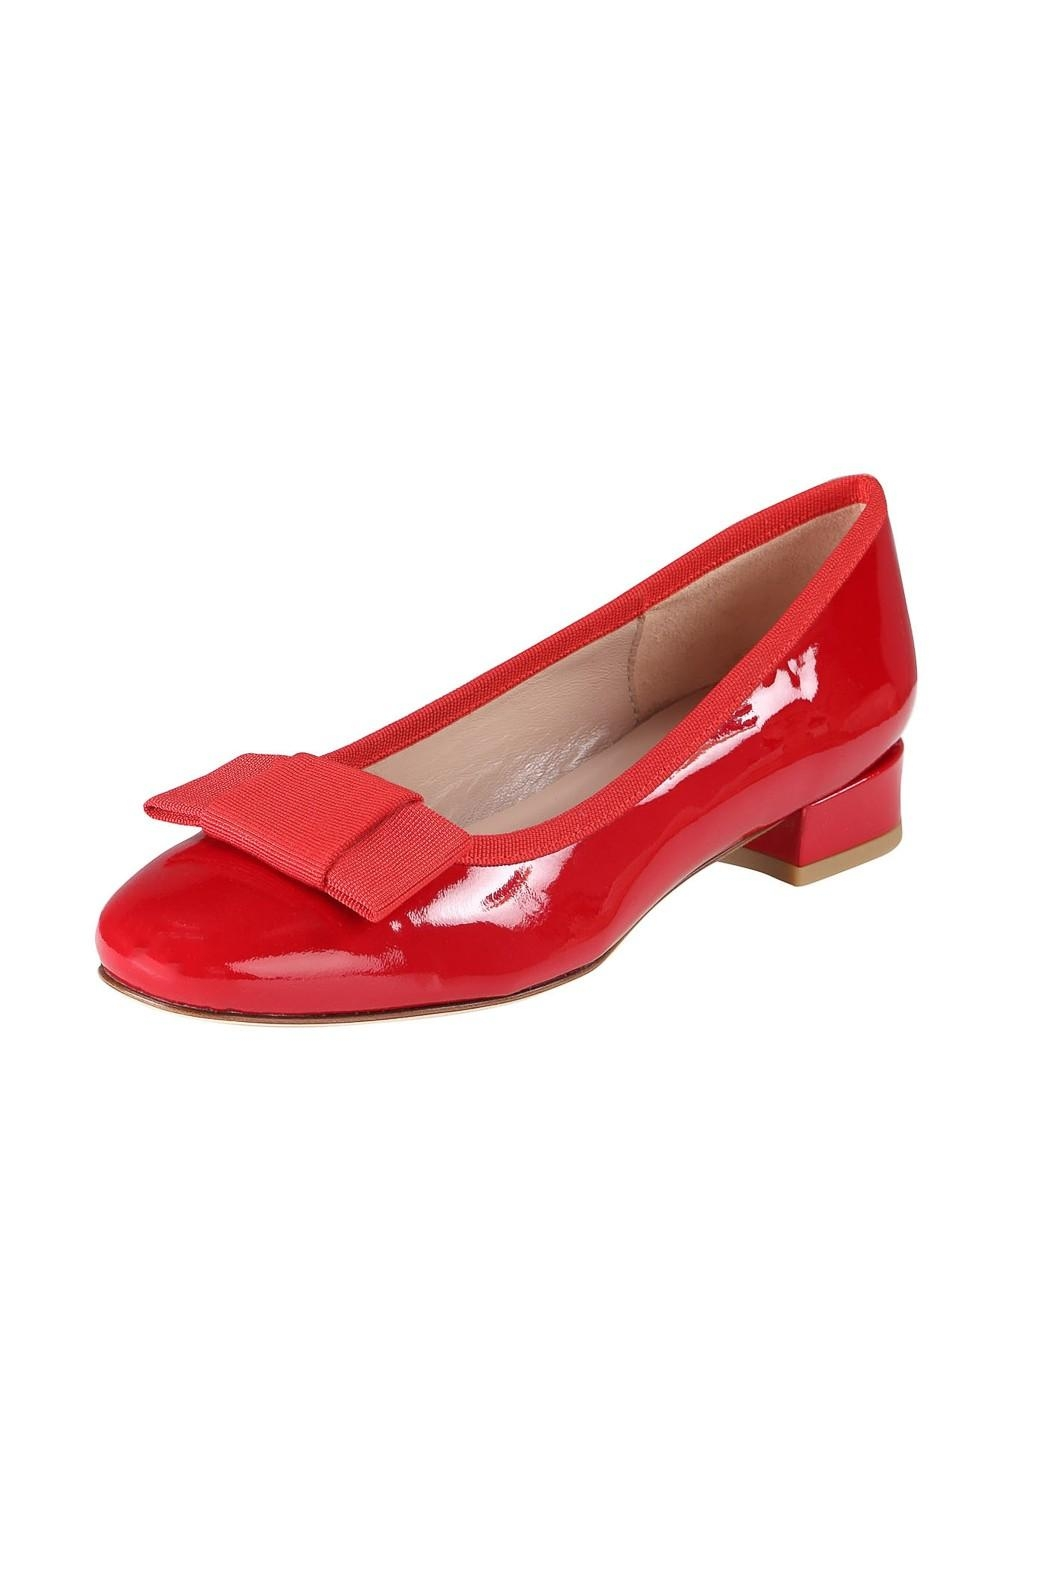 Pascucci Patent Heeled Ballet-Flats - Front Full Image